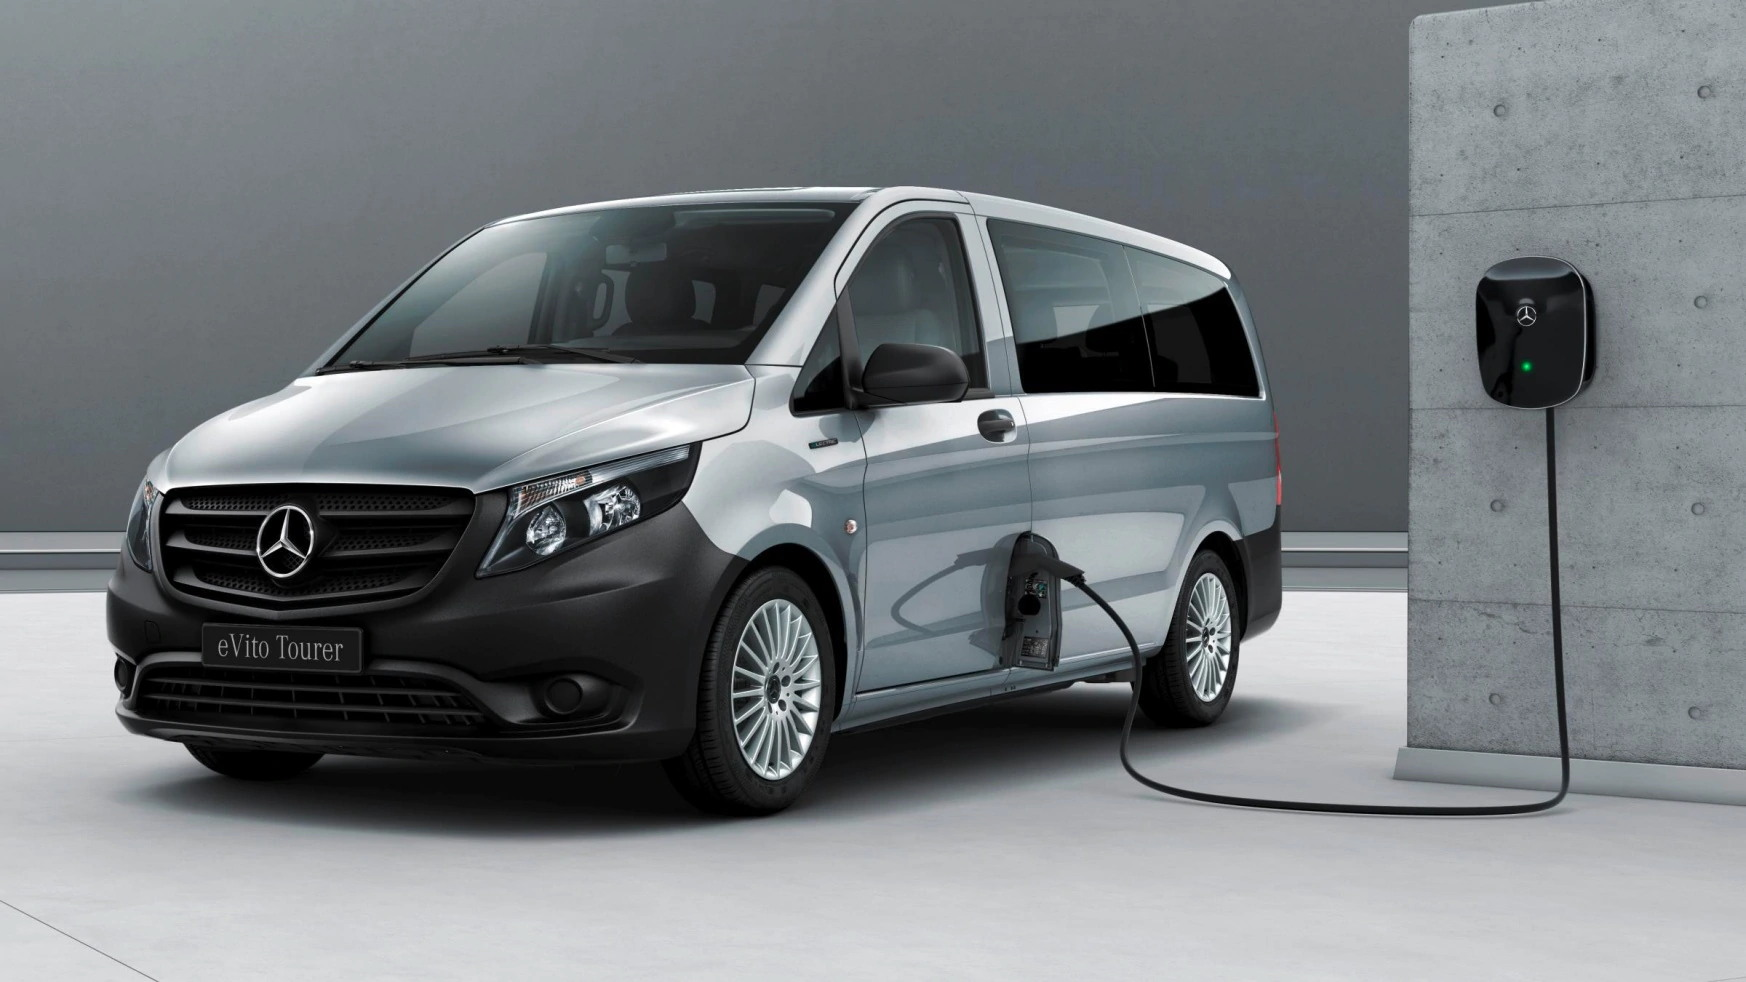 Mercedes-Benz has introduced the eVito Tourer, an all-electric minivan so far only available through the BerlKonig ridesharing service. There are no estimations as to when the model may hit the mass market.